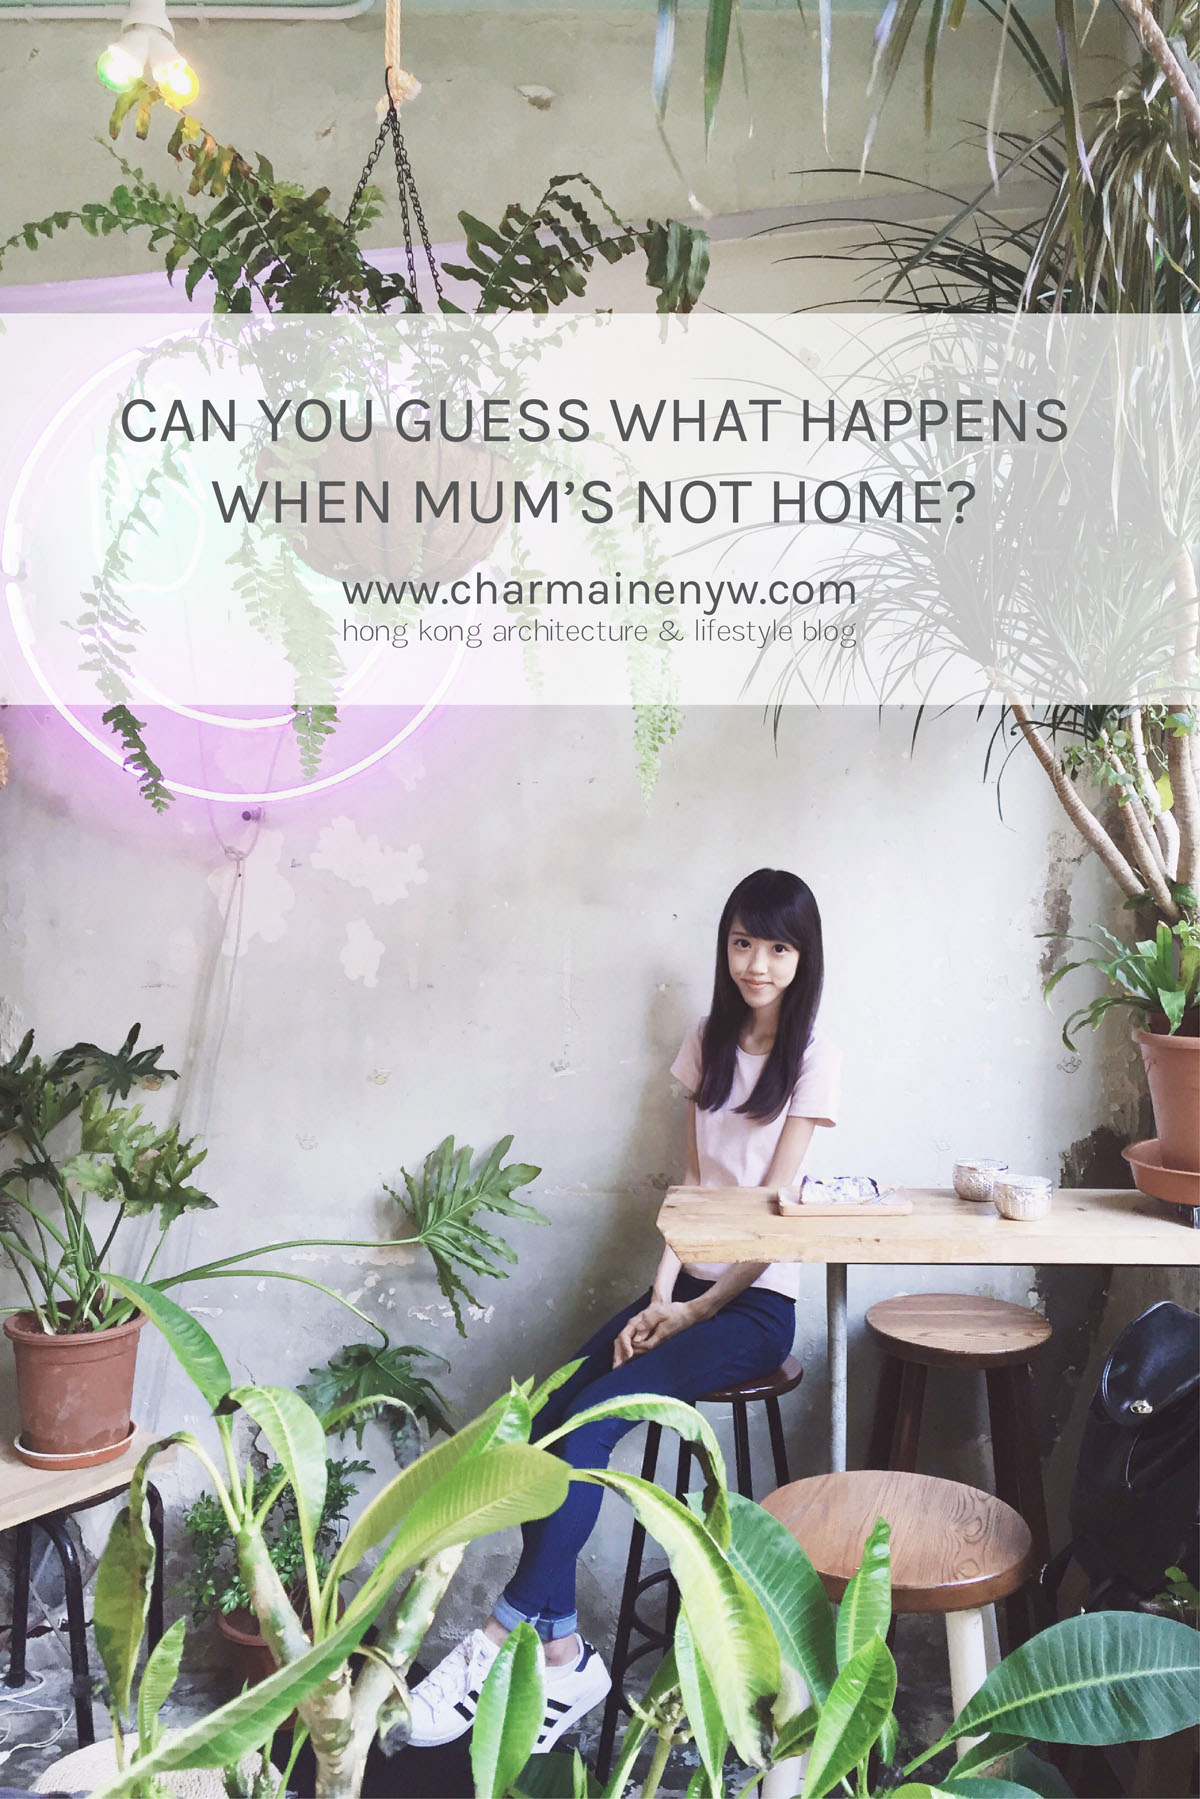 Mum's Not Home 媽不在家 in Yau Ma Tei, Hong Kong